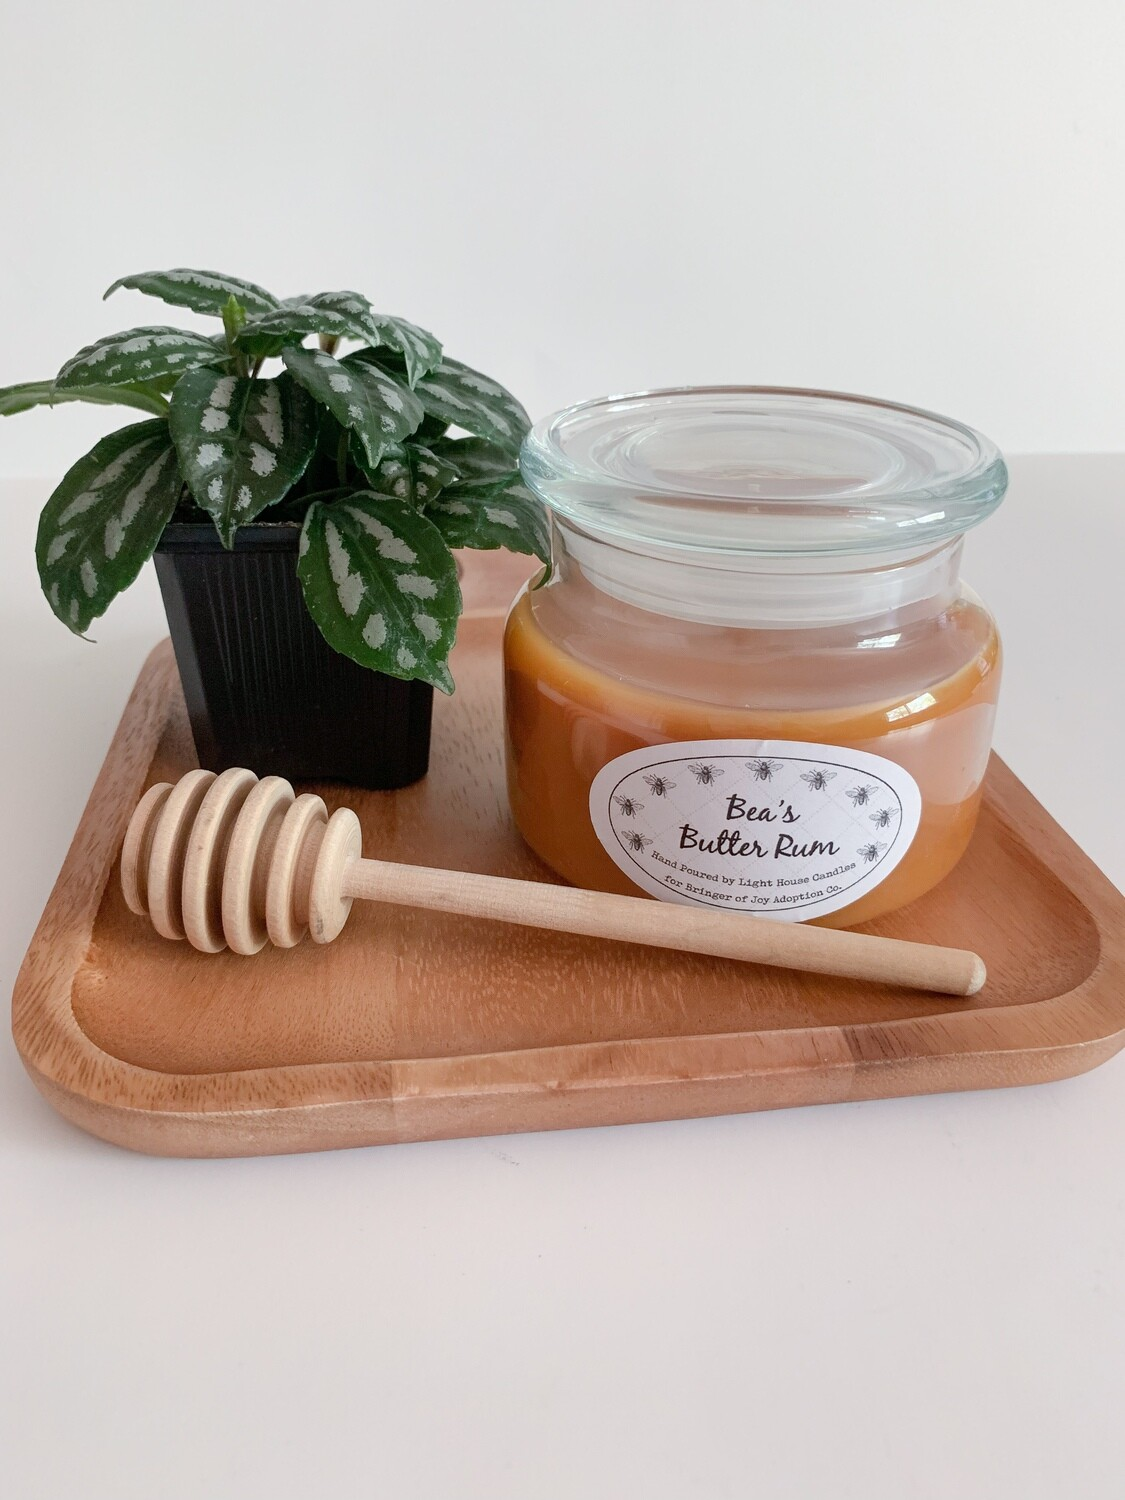 Bea's Butter Rum Candle